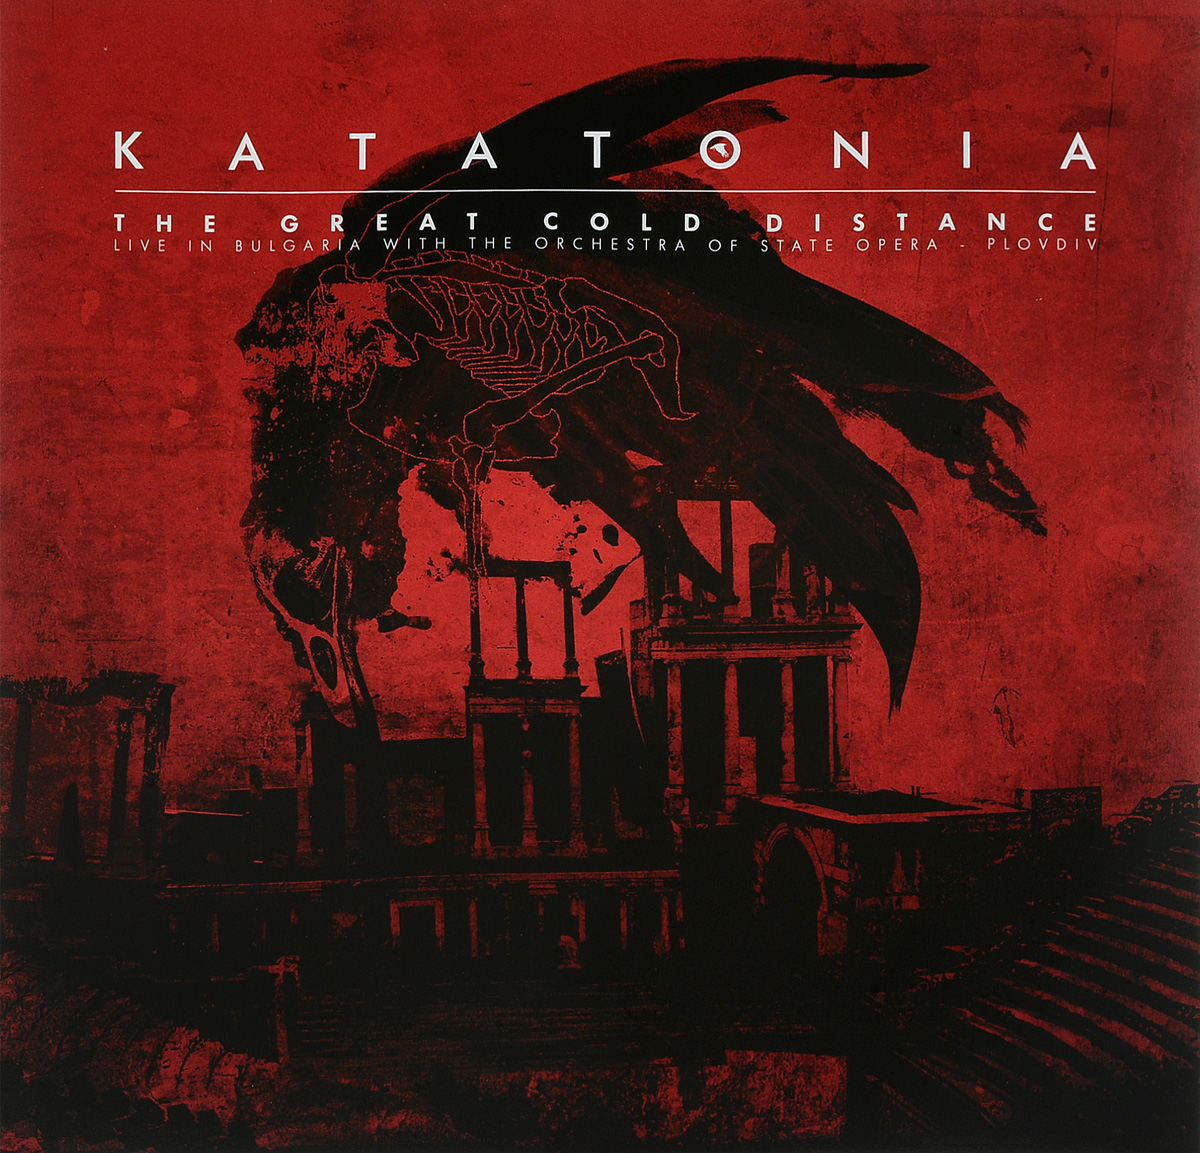 Katatonia Katatonia. The Great Cold Distance. Live In Bulgaria (2 LP) procol harum procol harum live in concert with the edmonton symphony orchesa 2 lp